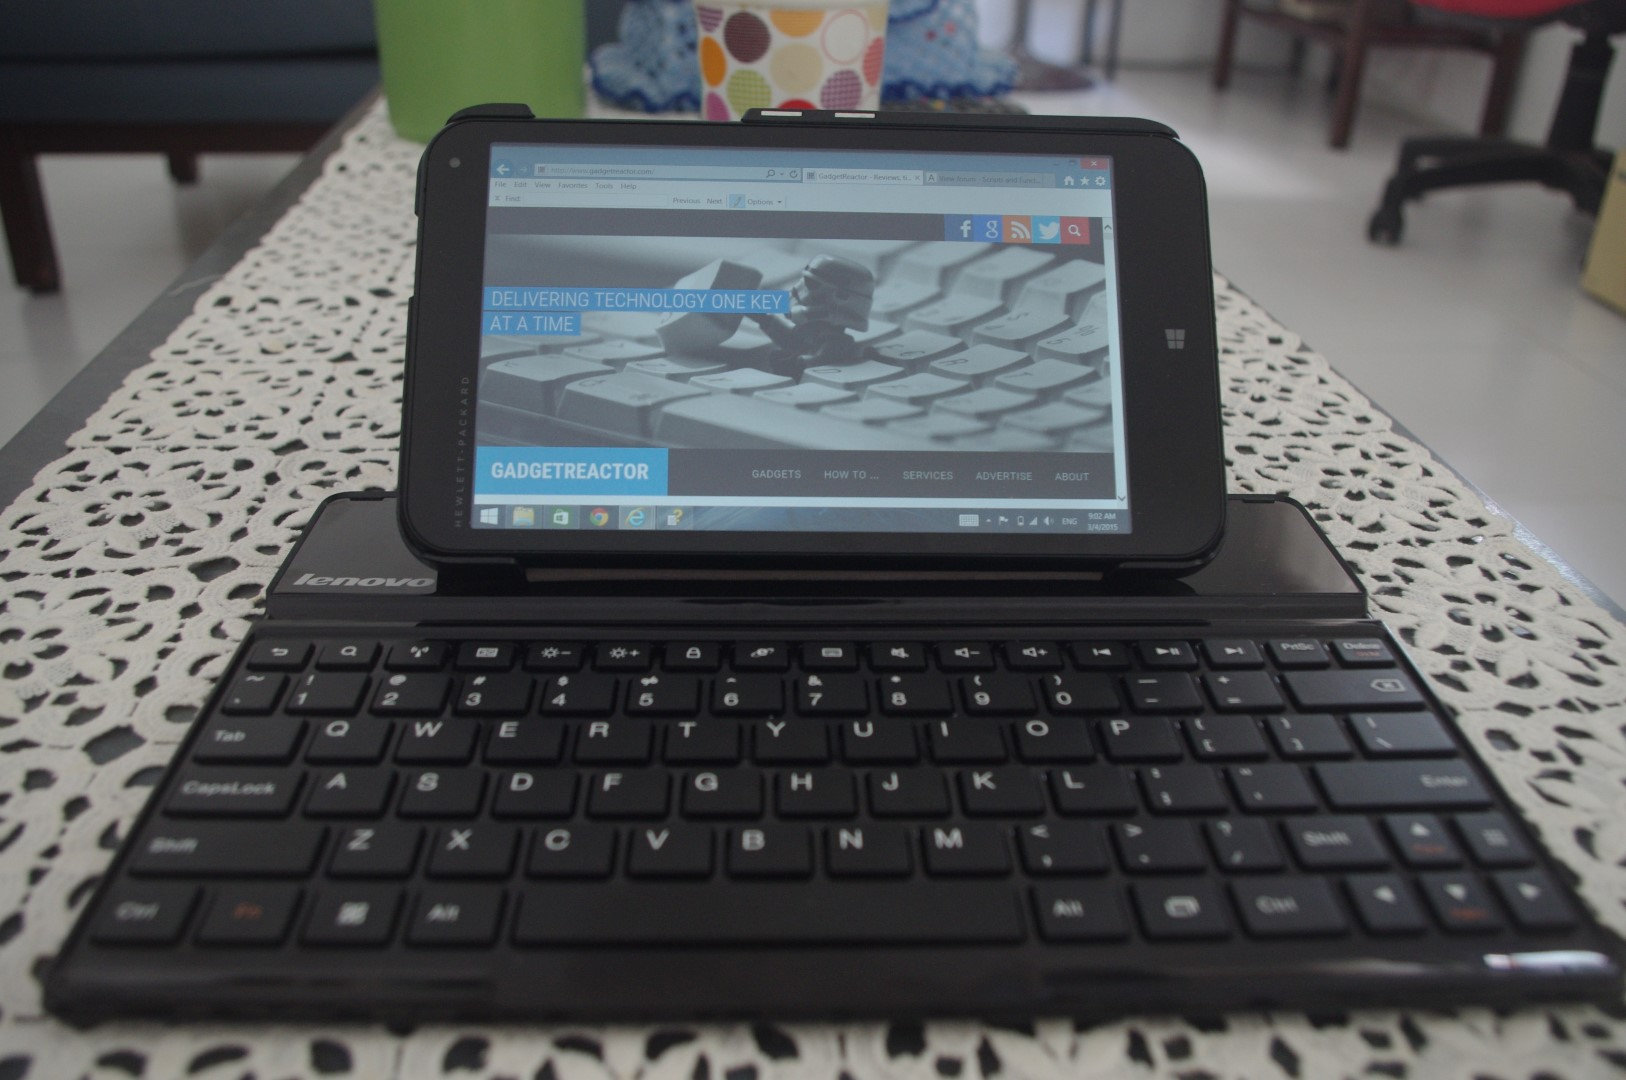 Case Design phone case with keyboard : Review: Lenovo S6000 Bluetooth Keyboard u2013 GadgetReactor